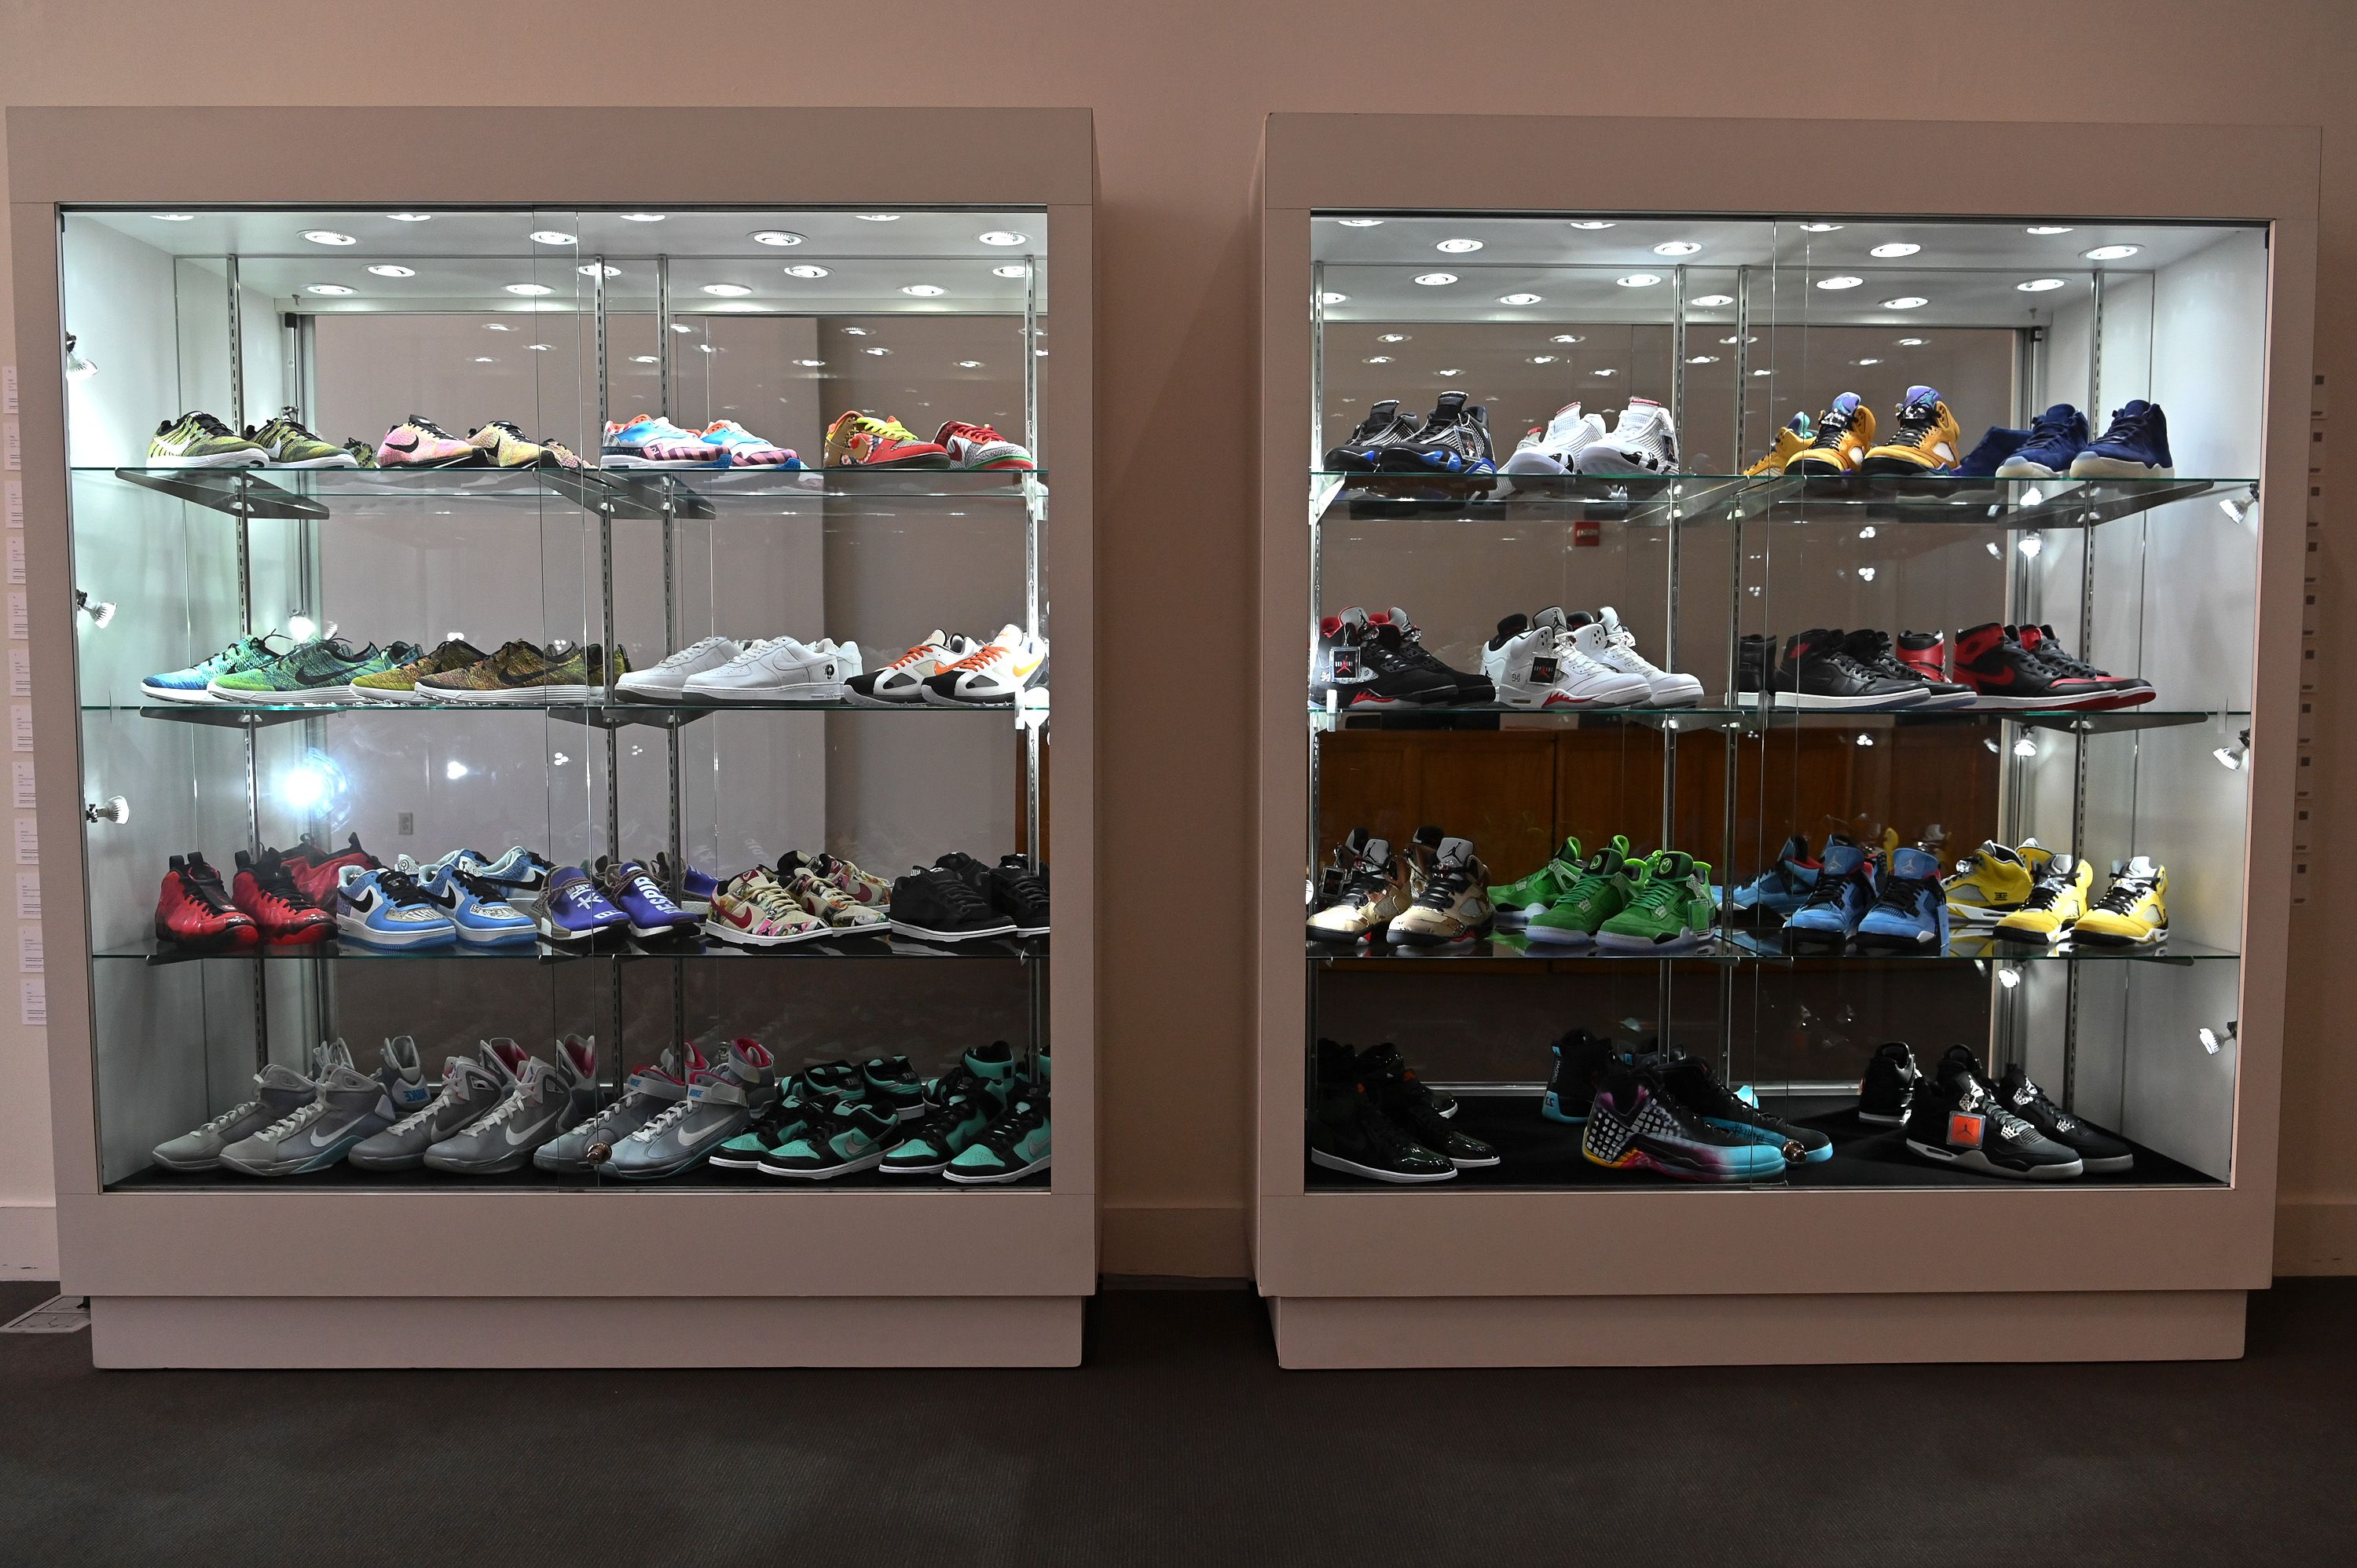 Sotheby's Teams Up With Stadium Goods for Rare Sneaker Auction